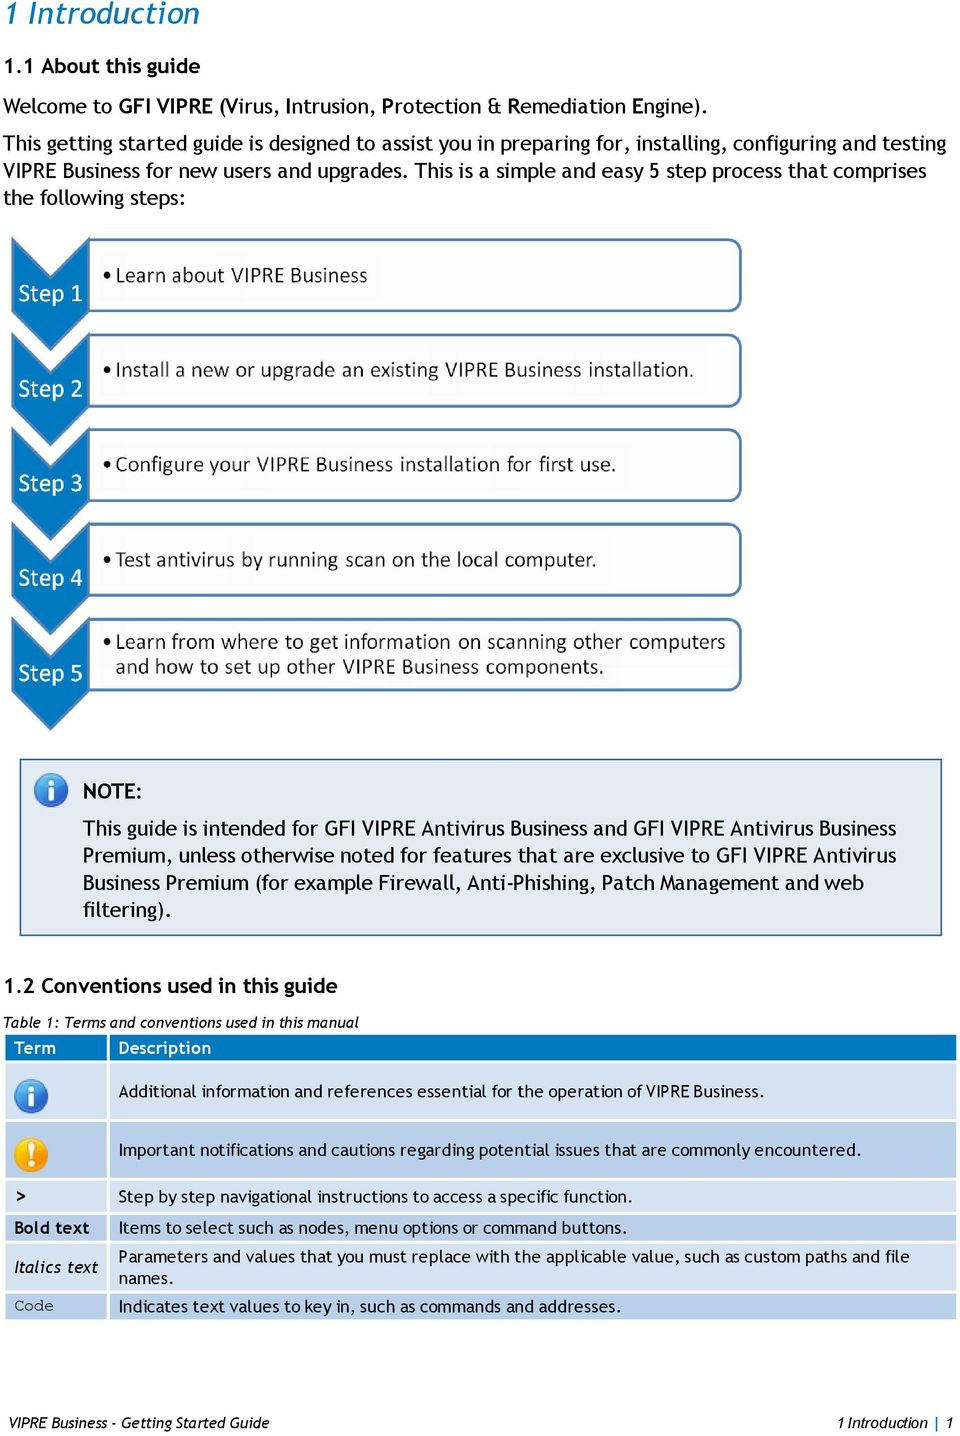 This is a simple and easy 5 step process that comprises the following steps: NOTE: This guide is intended for GFI VIPRE Antivirus Business and GFI VIPRE Antivirus Business Premium, unless otherwise